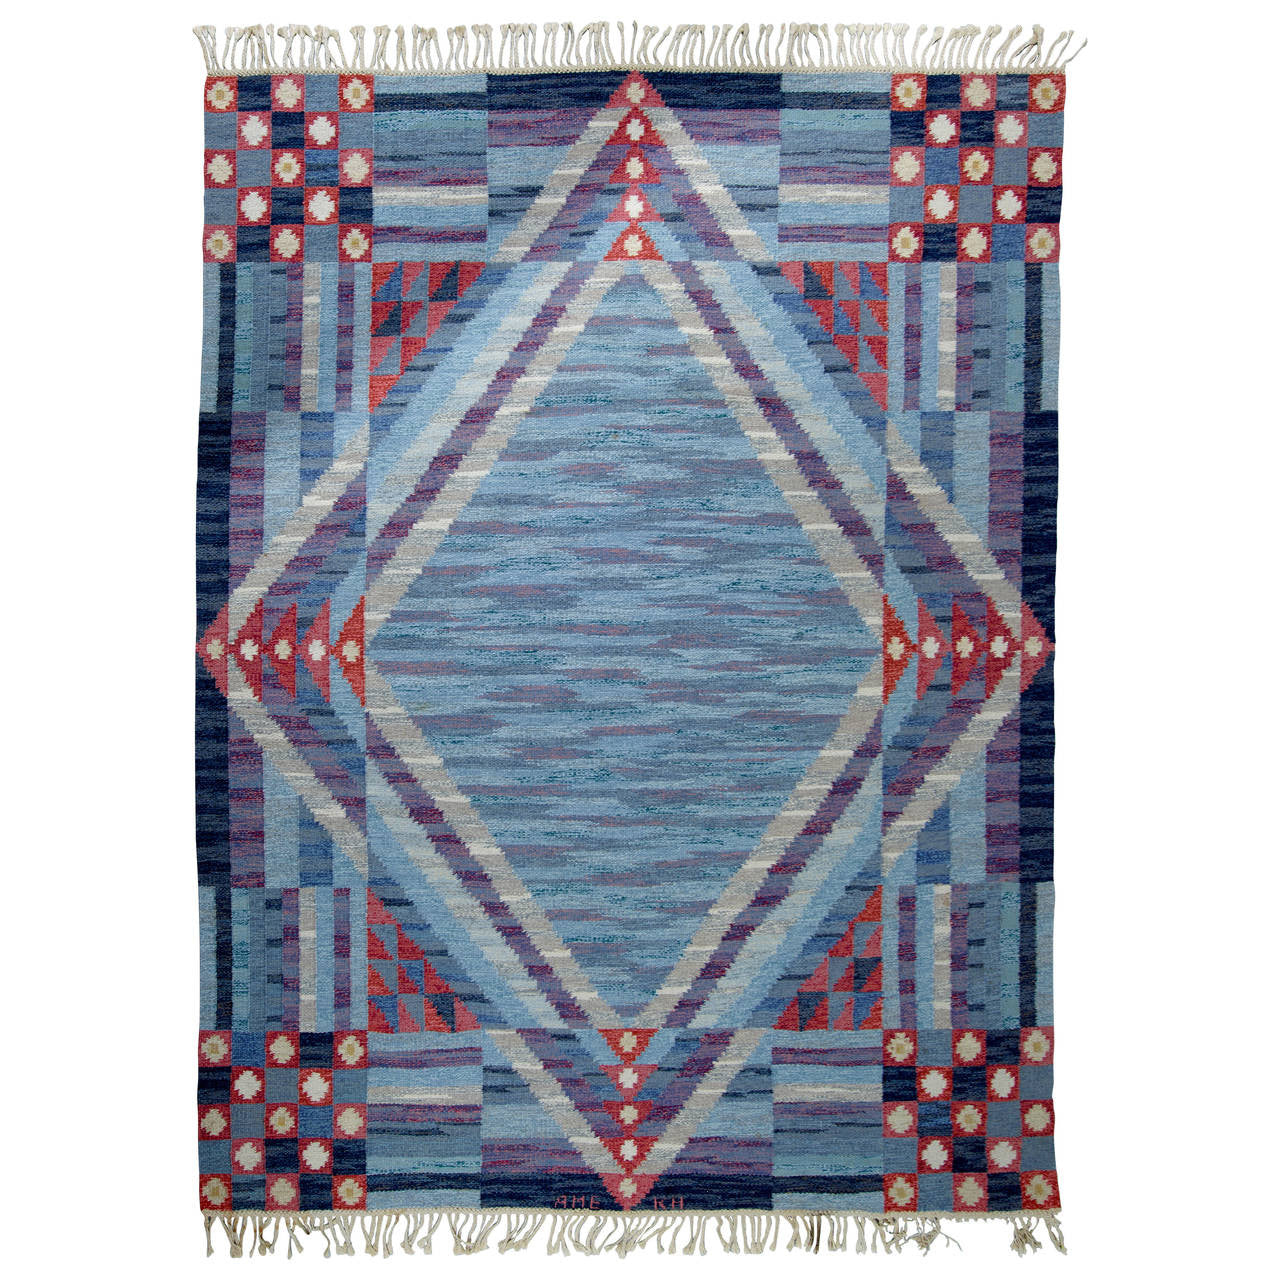 Swedish Flat-Weave Carpet, AME KH, 1950 - The Exchange Int